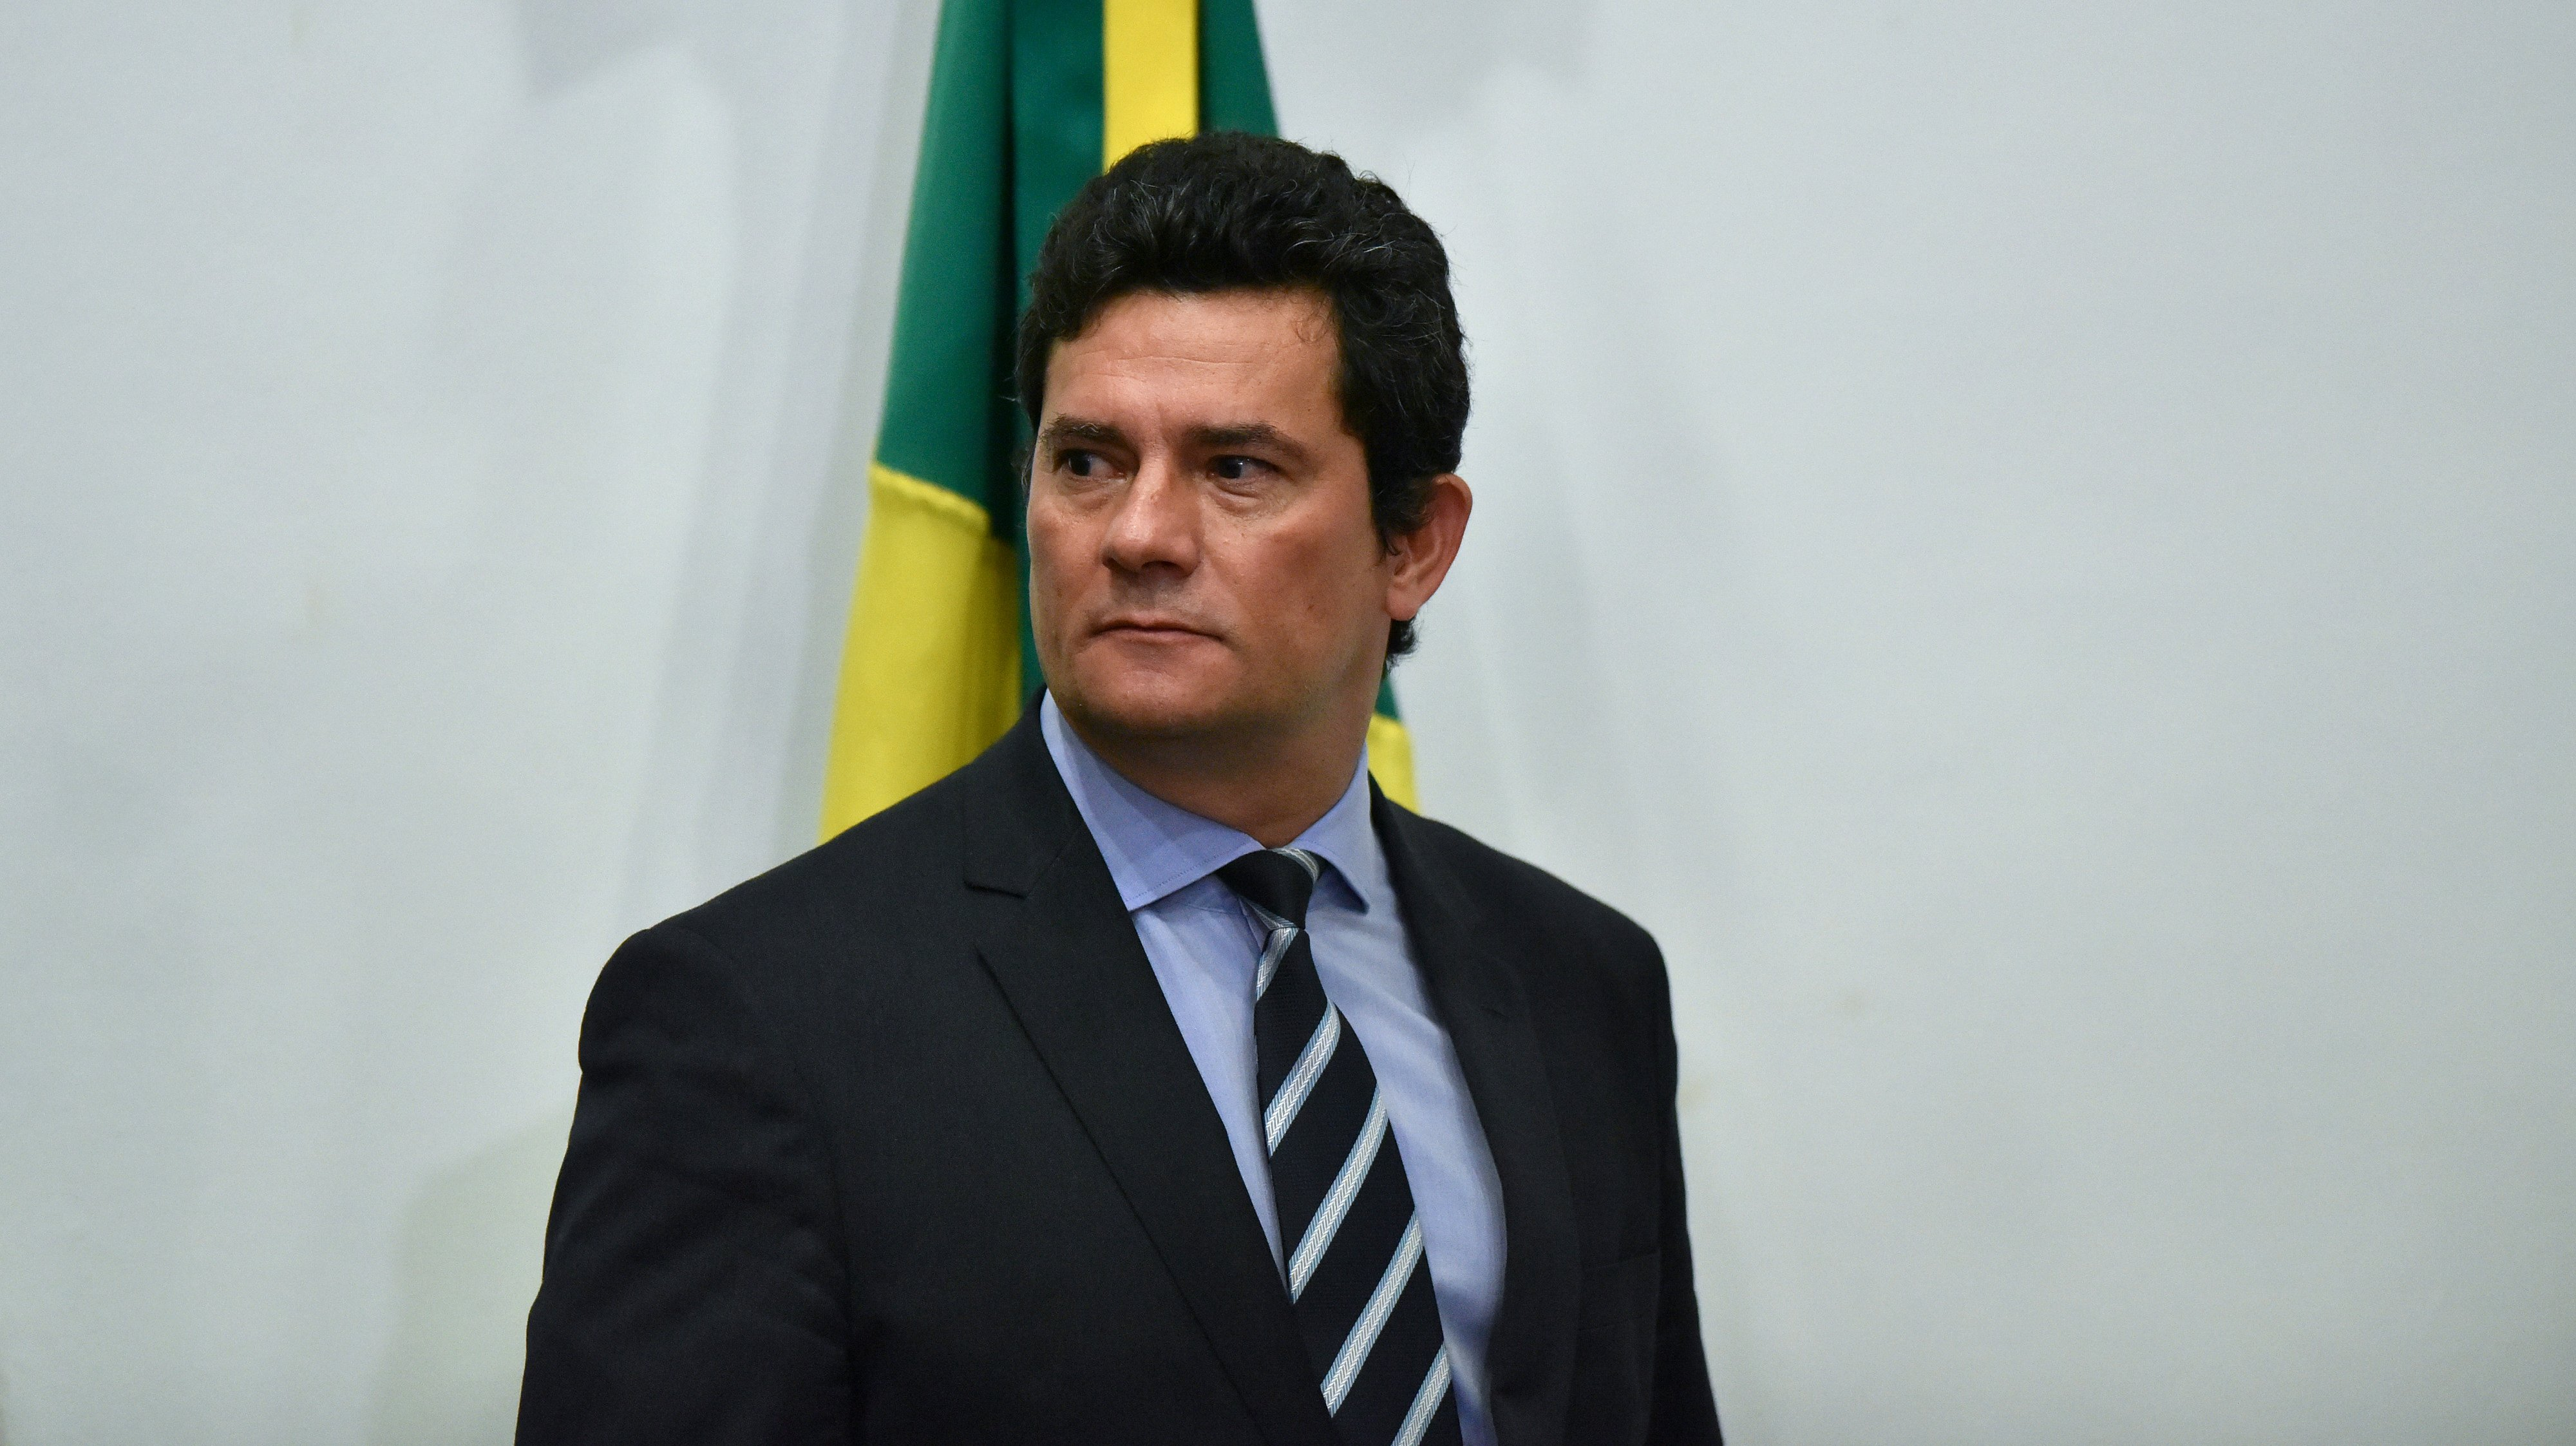 Brazil's Justice Minister Sergio Moro Resigns In New Blow To Government